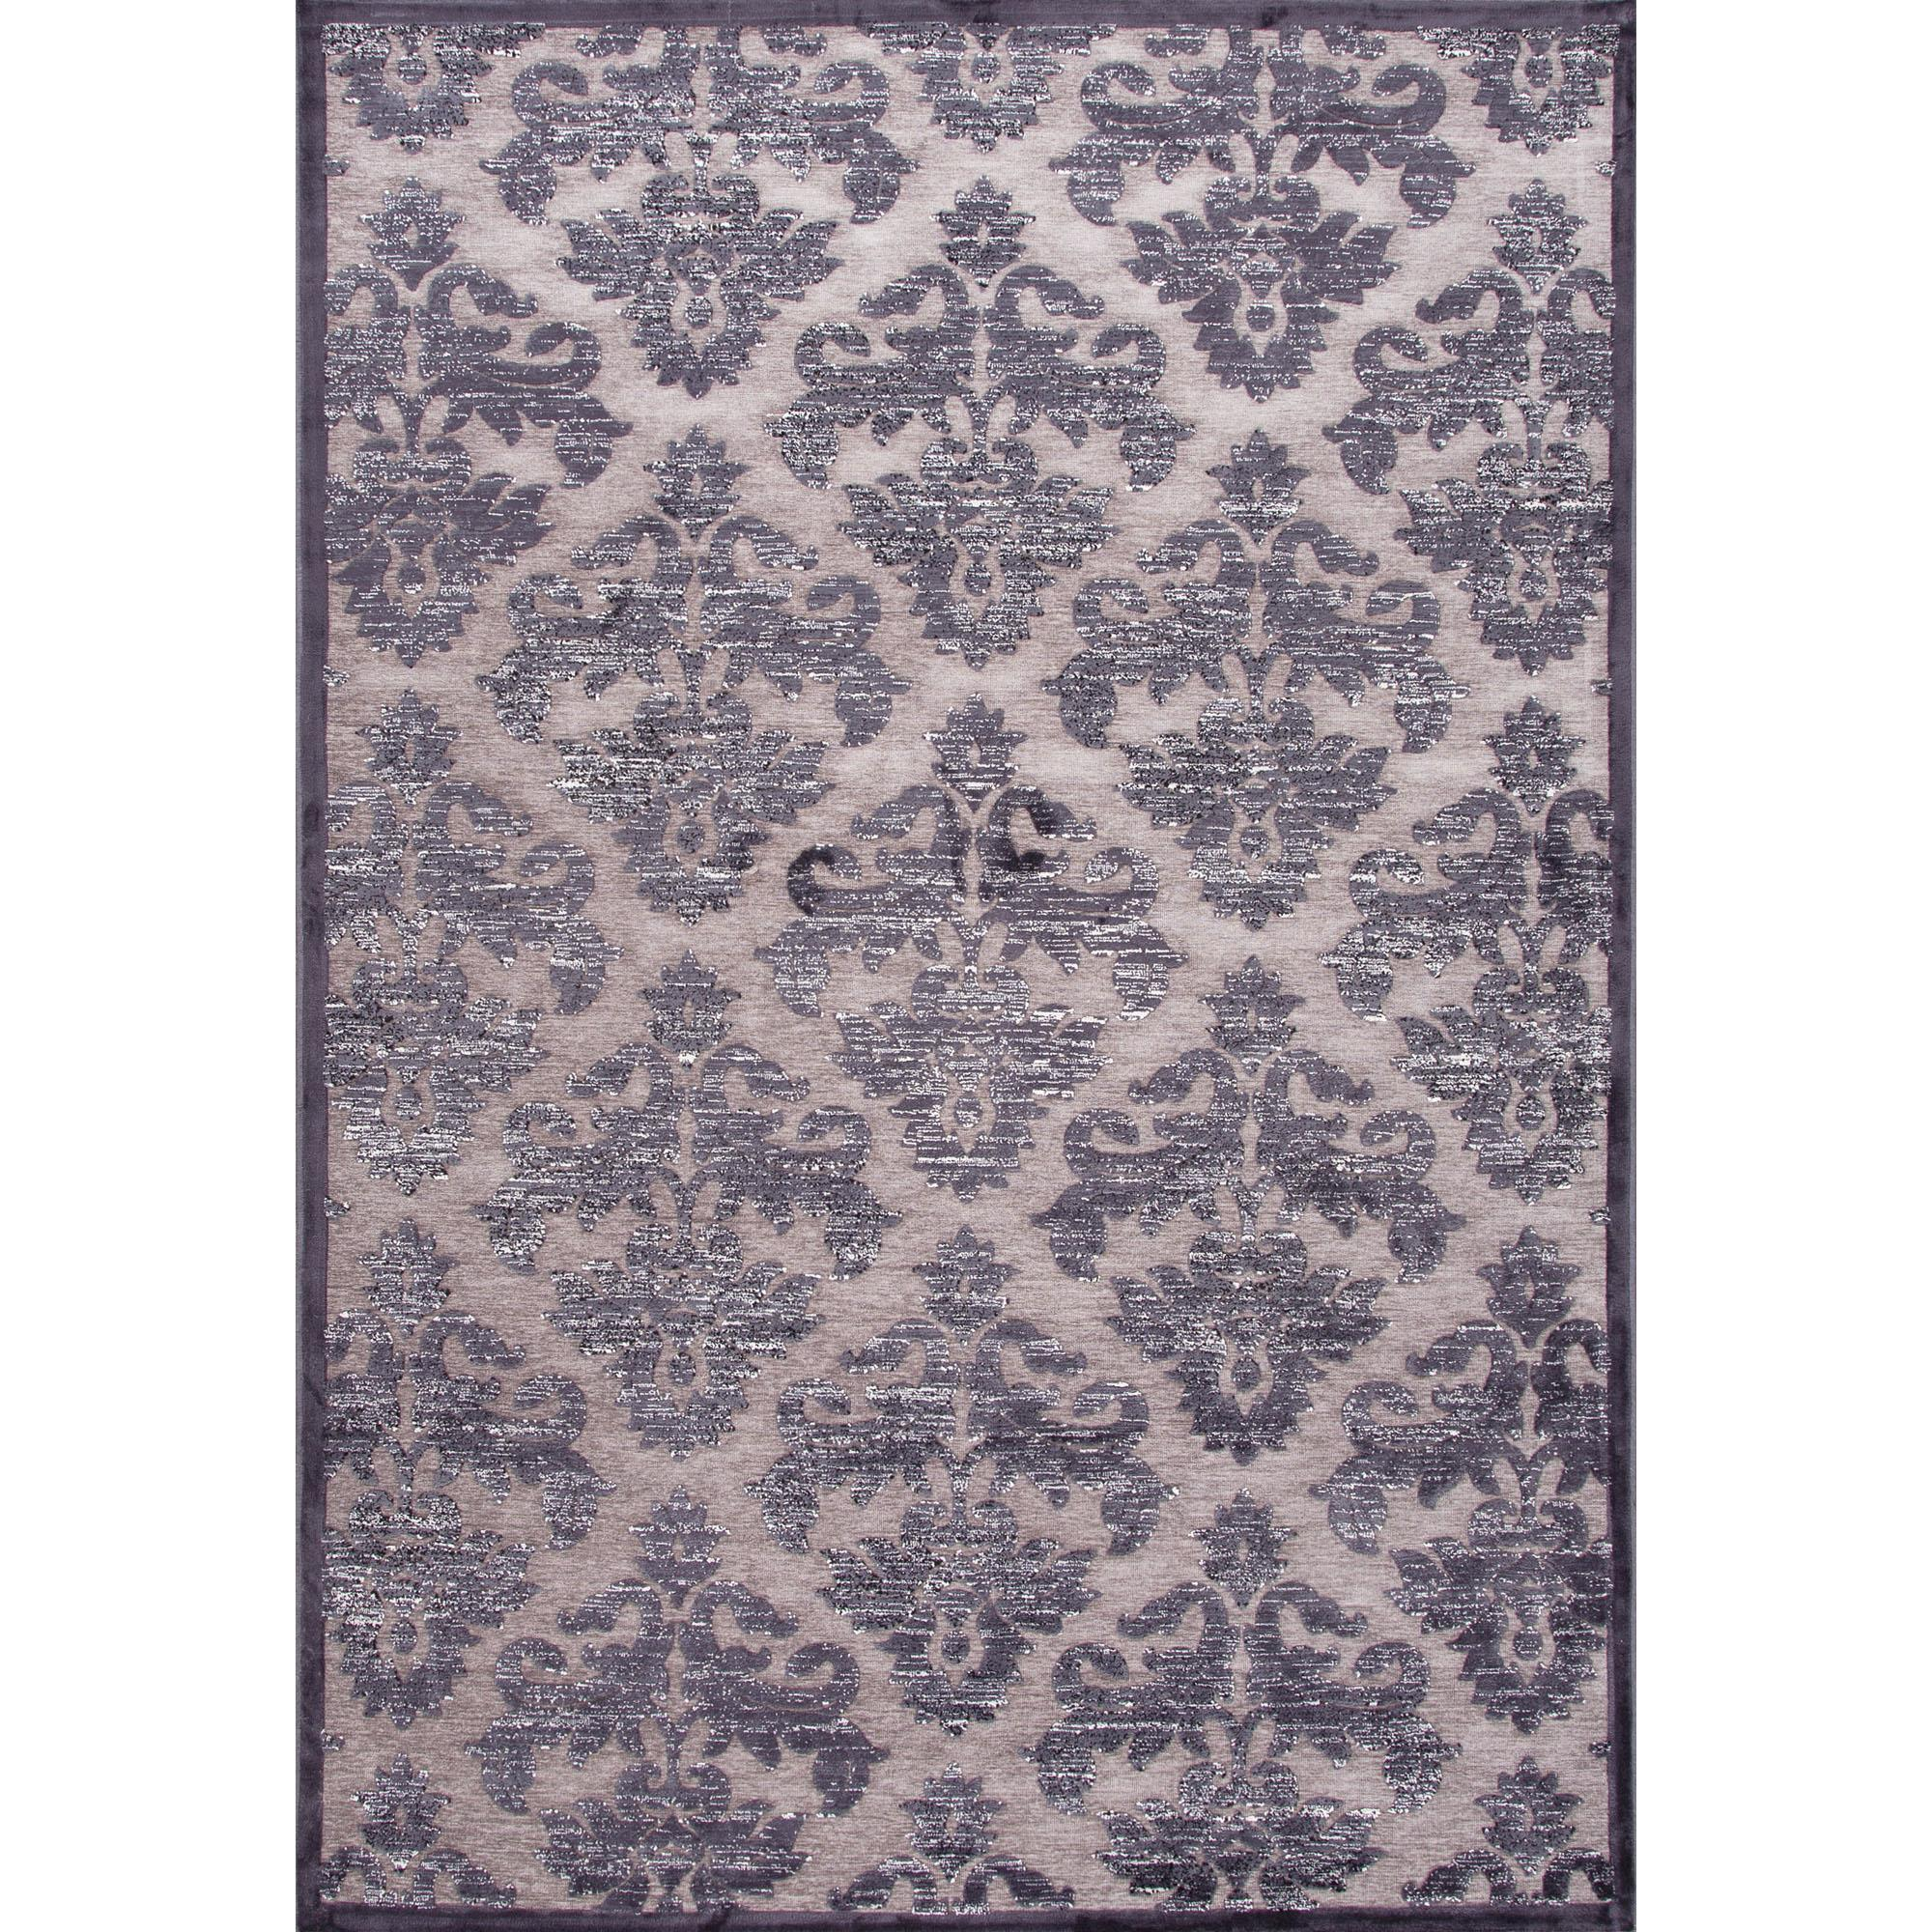 JAIPUR Rugs Fables 9 x 12 Rug - Item Number: RUG111927